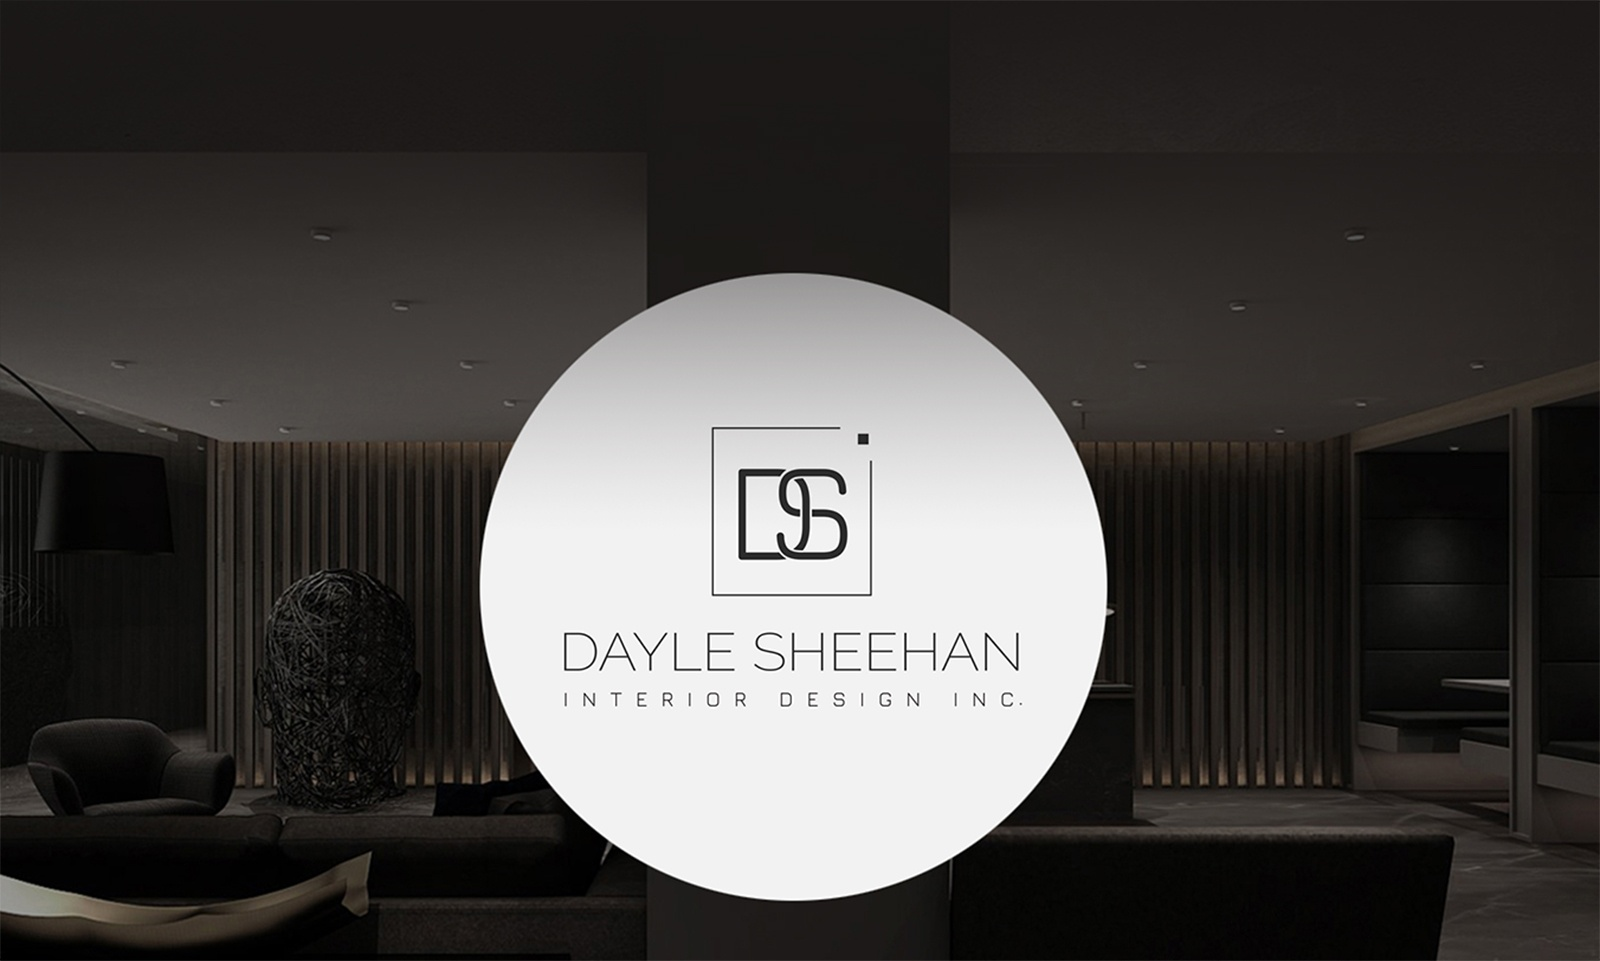 Dayle Sheehan Interior Design Inc. - Calgary Interior Designer